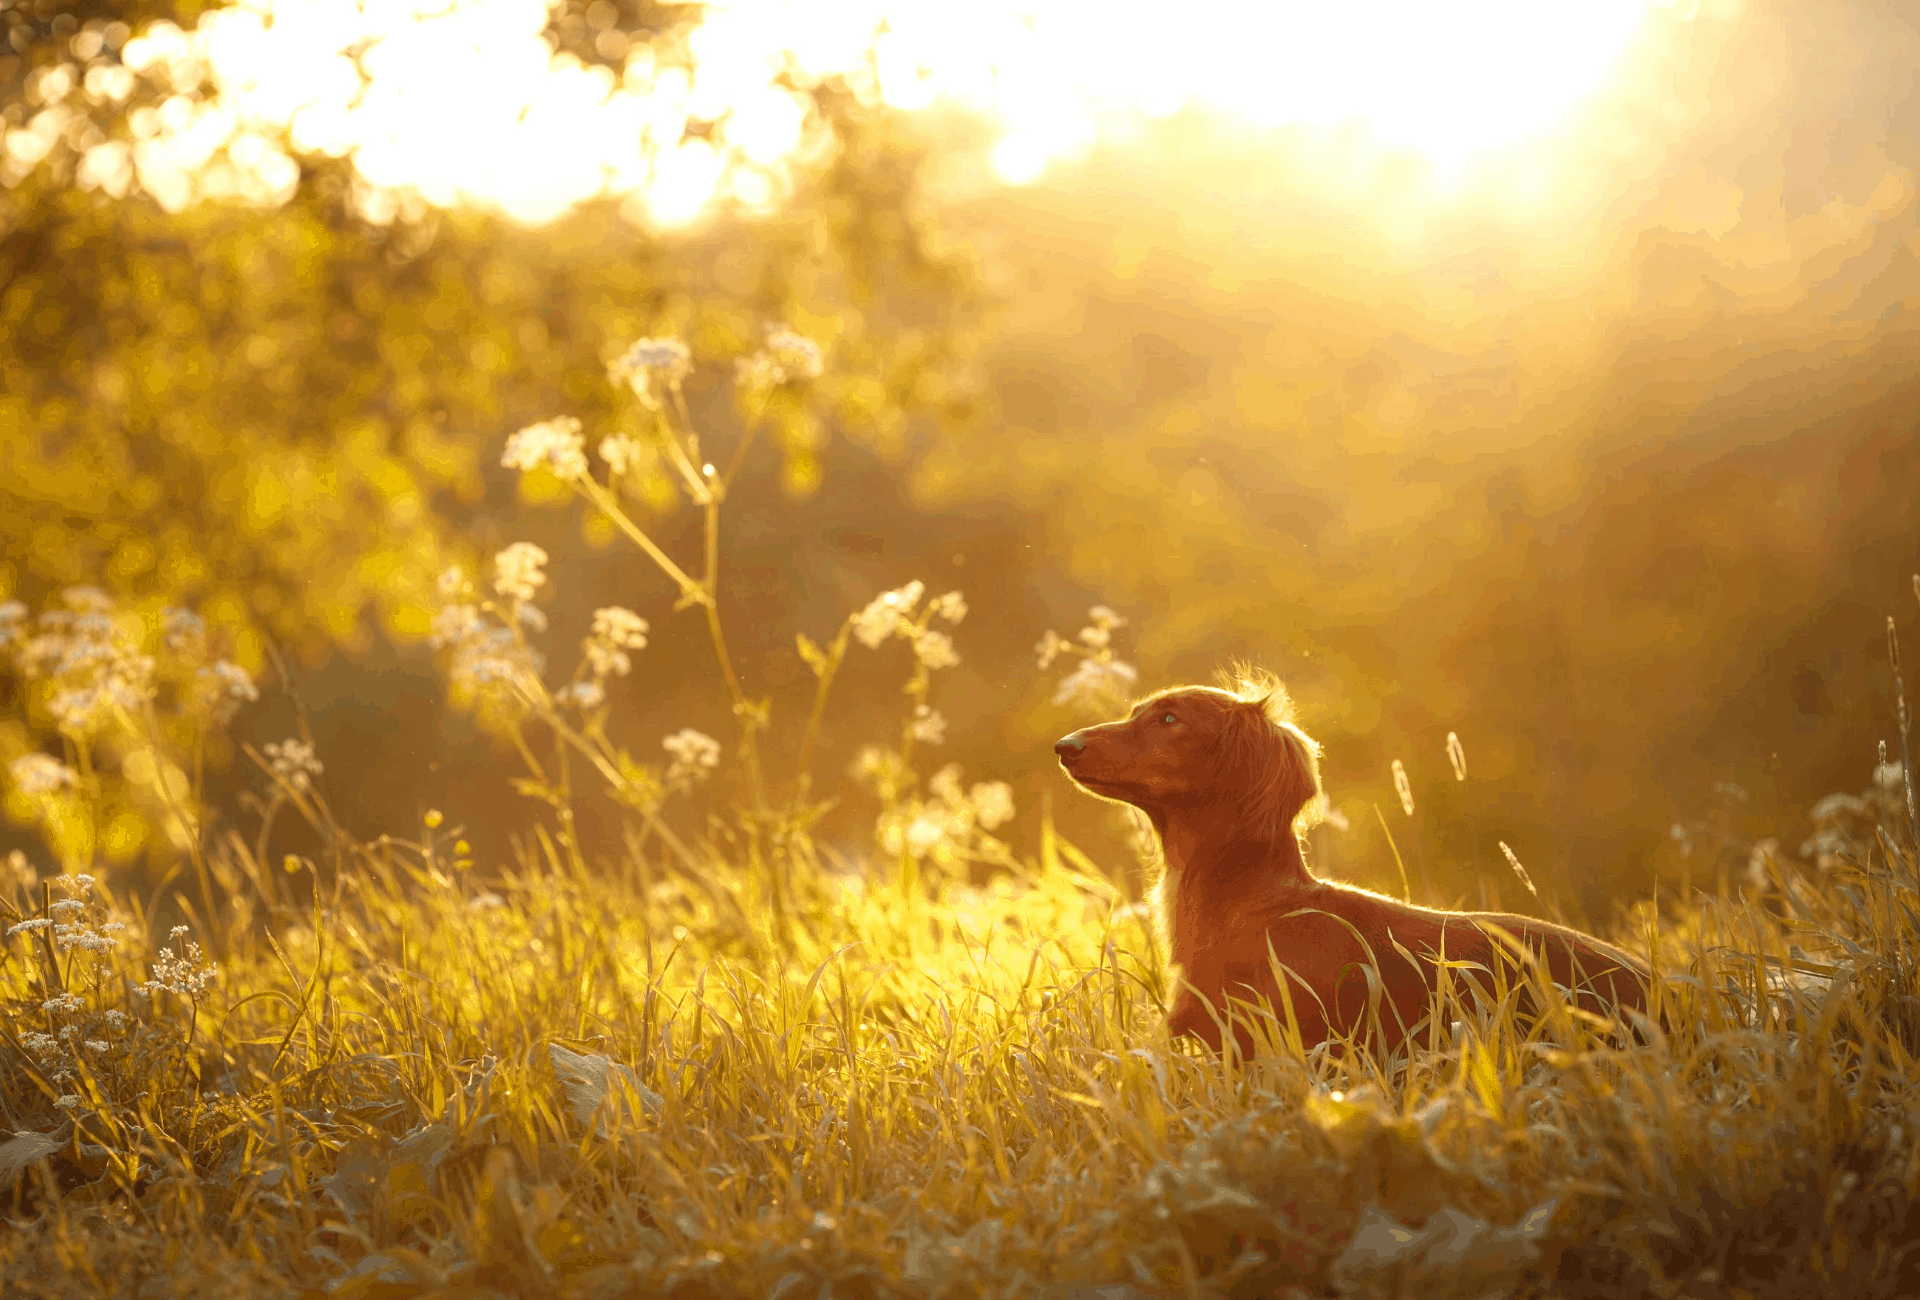 Dachshund in field during sunset